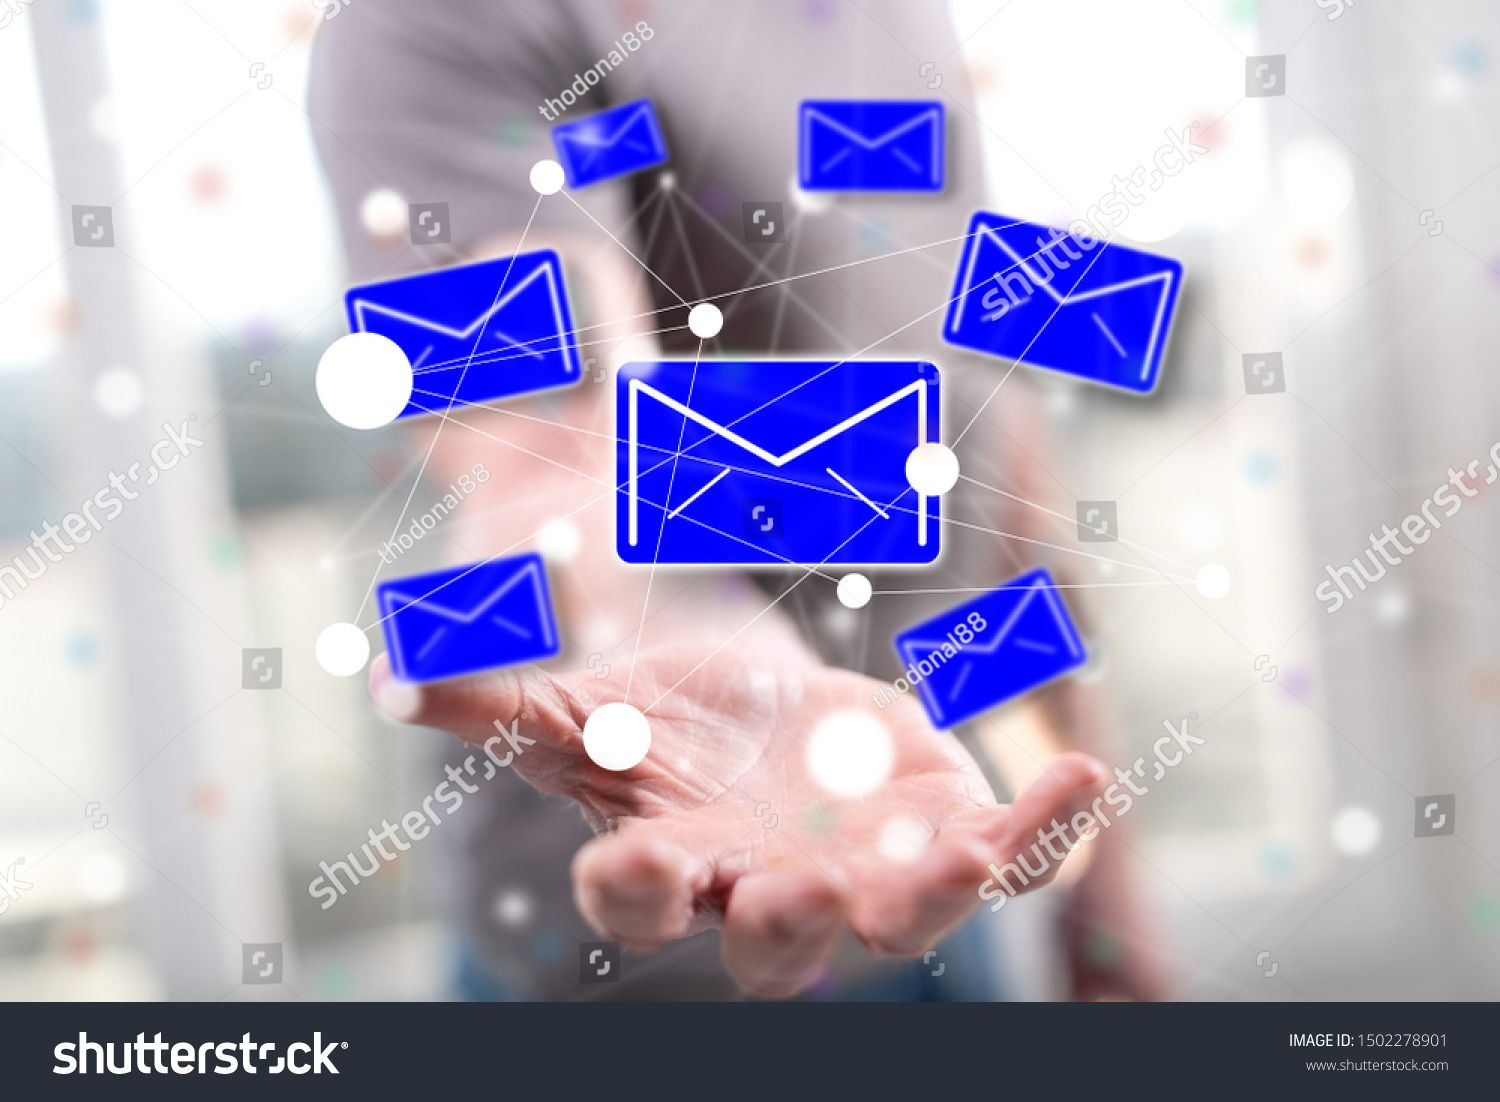 Message concept above the hand of a man in background